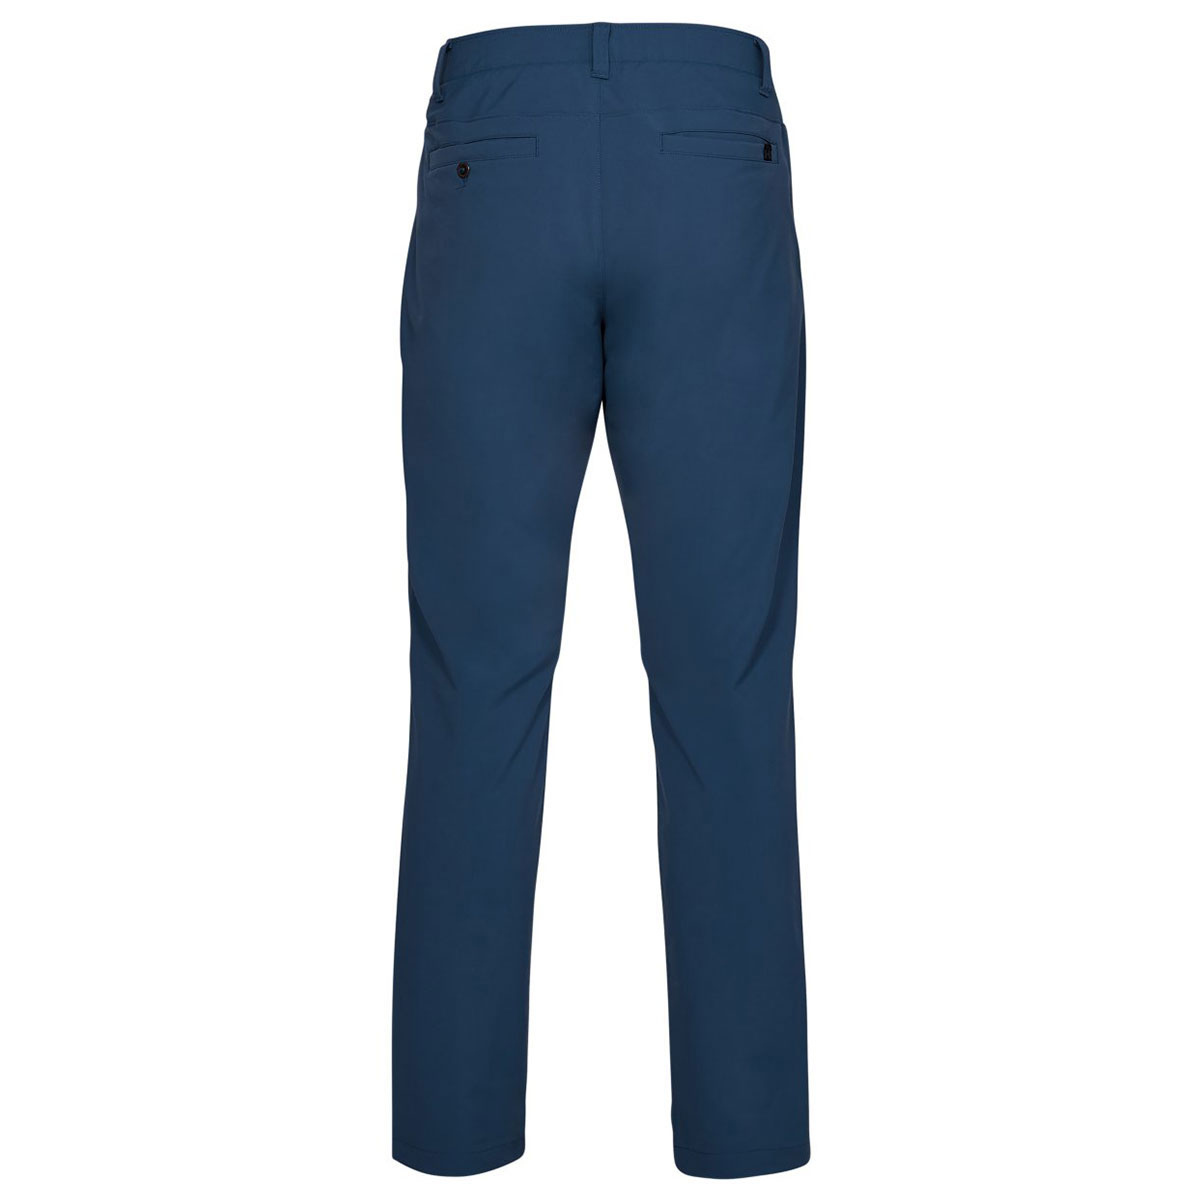 Under-Armour-Mens-2019-EU-Performance-Slim-Taper-Soft-Stretch-Golf-Trousers thumbnail 17